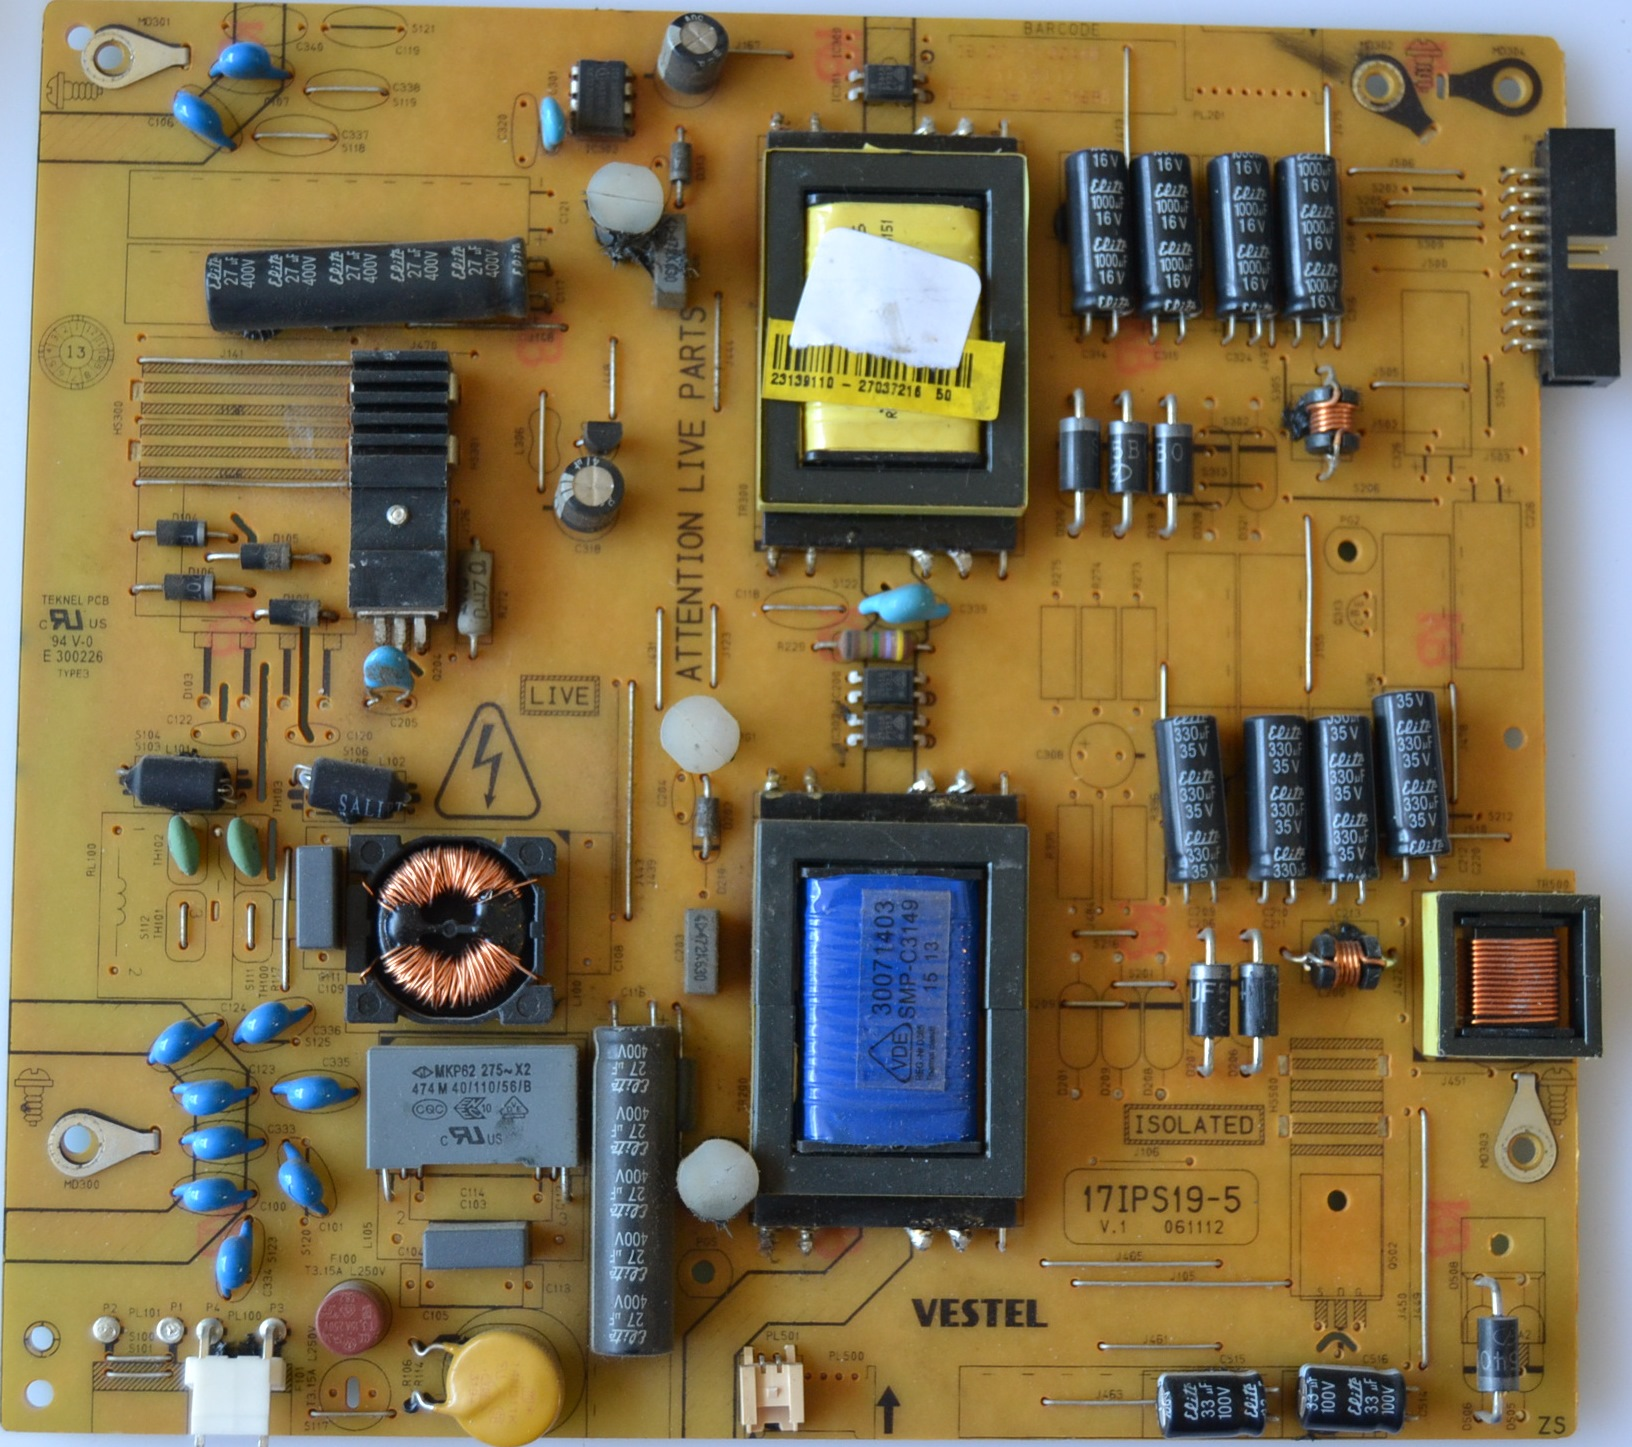 17IPS19-5/32INC/NEO/32165 POWER BOARD ,17IPS19-5,V.1 061112 for 32inc DISPLAY ,23139110,27037216,